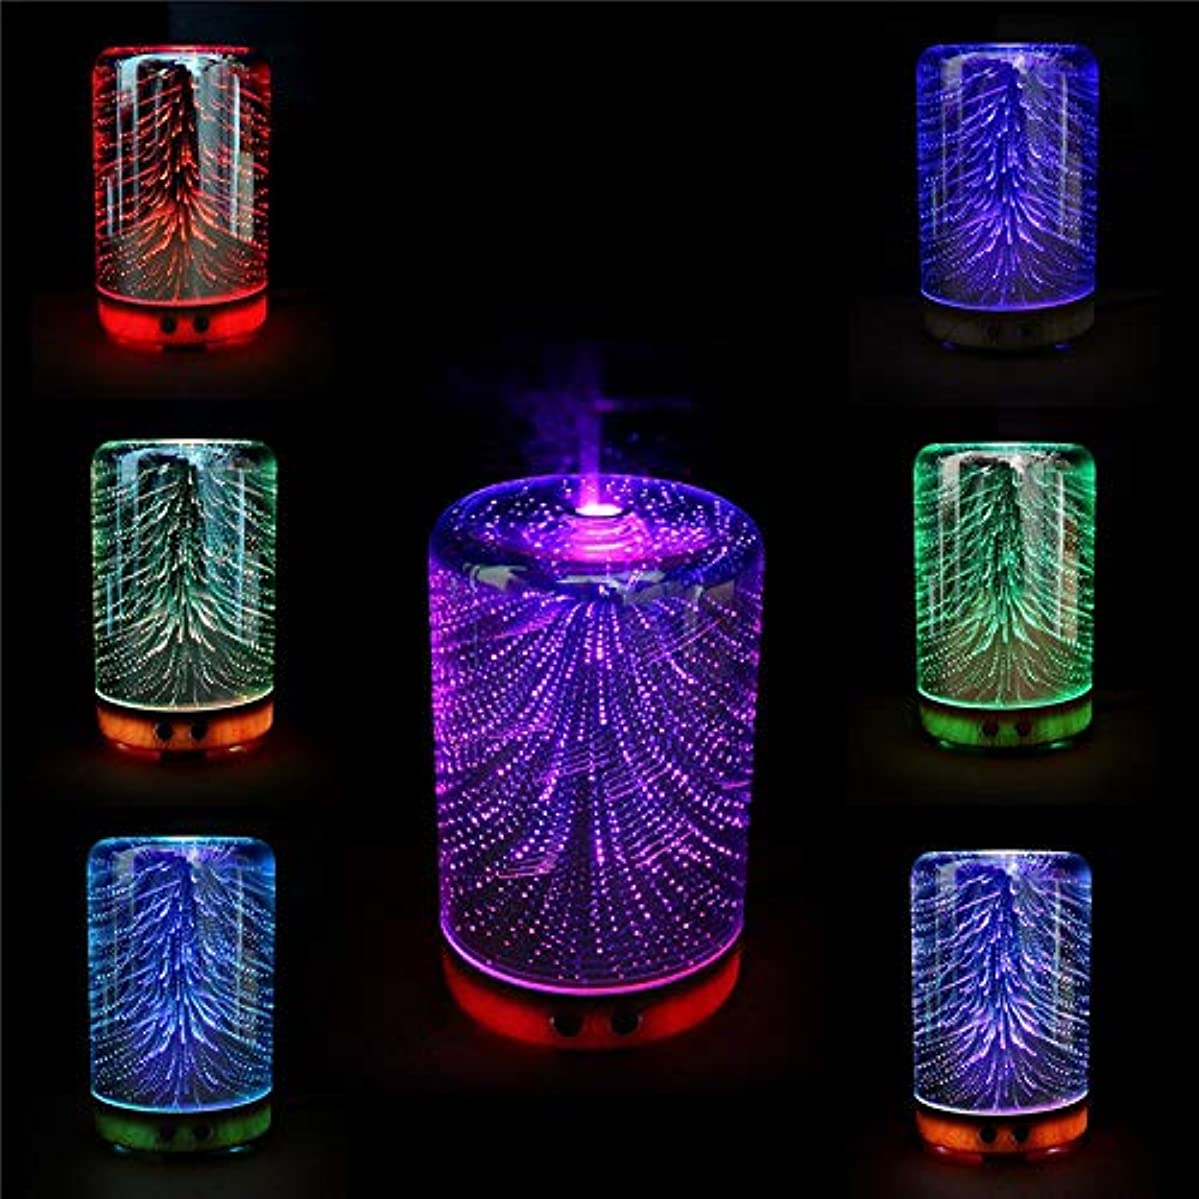 あえて主人徒歩でFishagelo Color Changing 3D Lighting Essential Oil Aroma Diffuser Ultrasonic Mist Humidifier Aromatherapy 141[並行輸入]